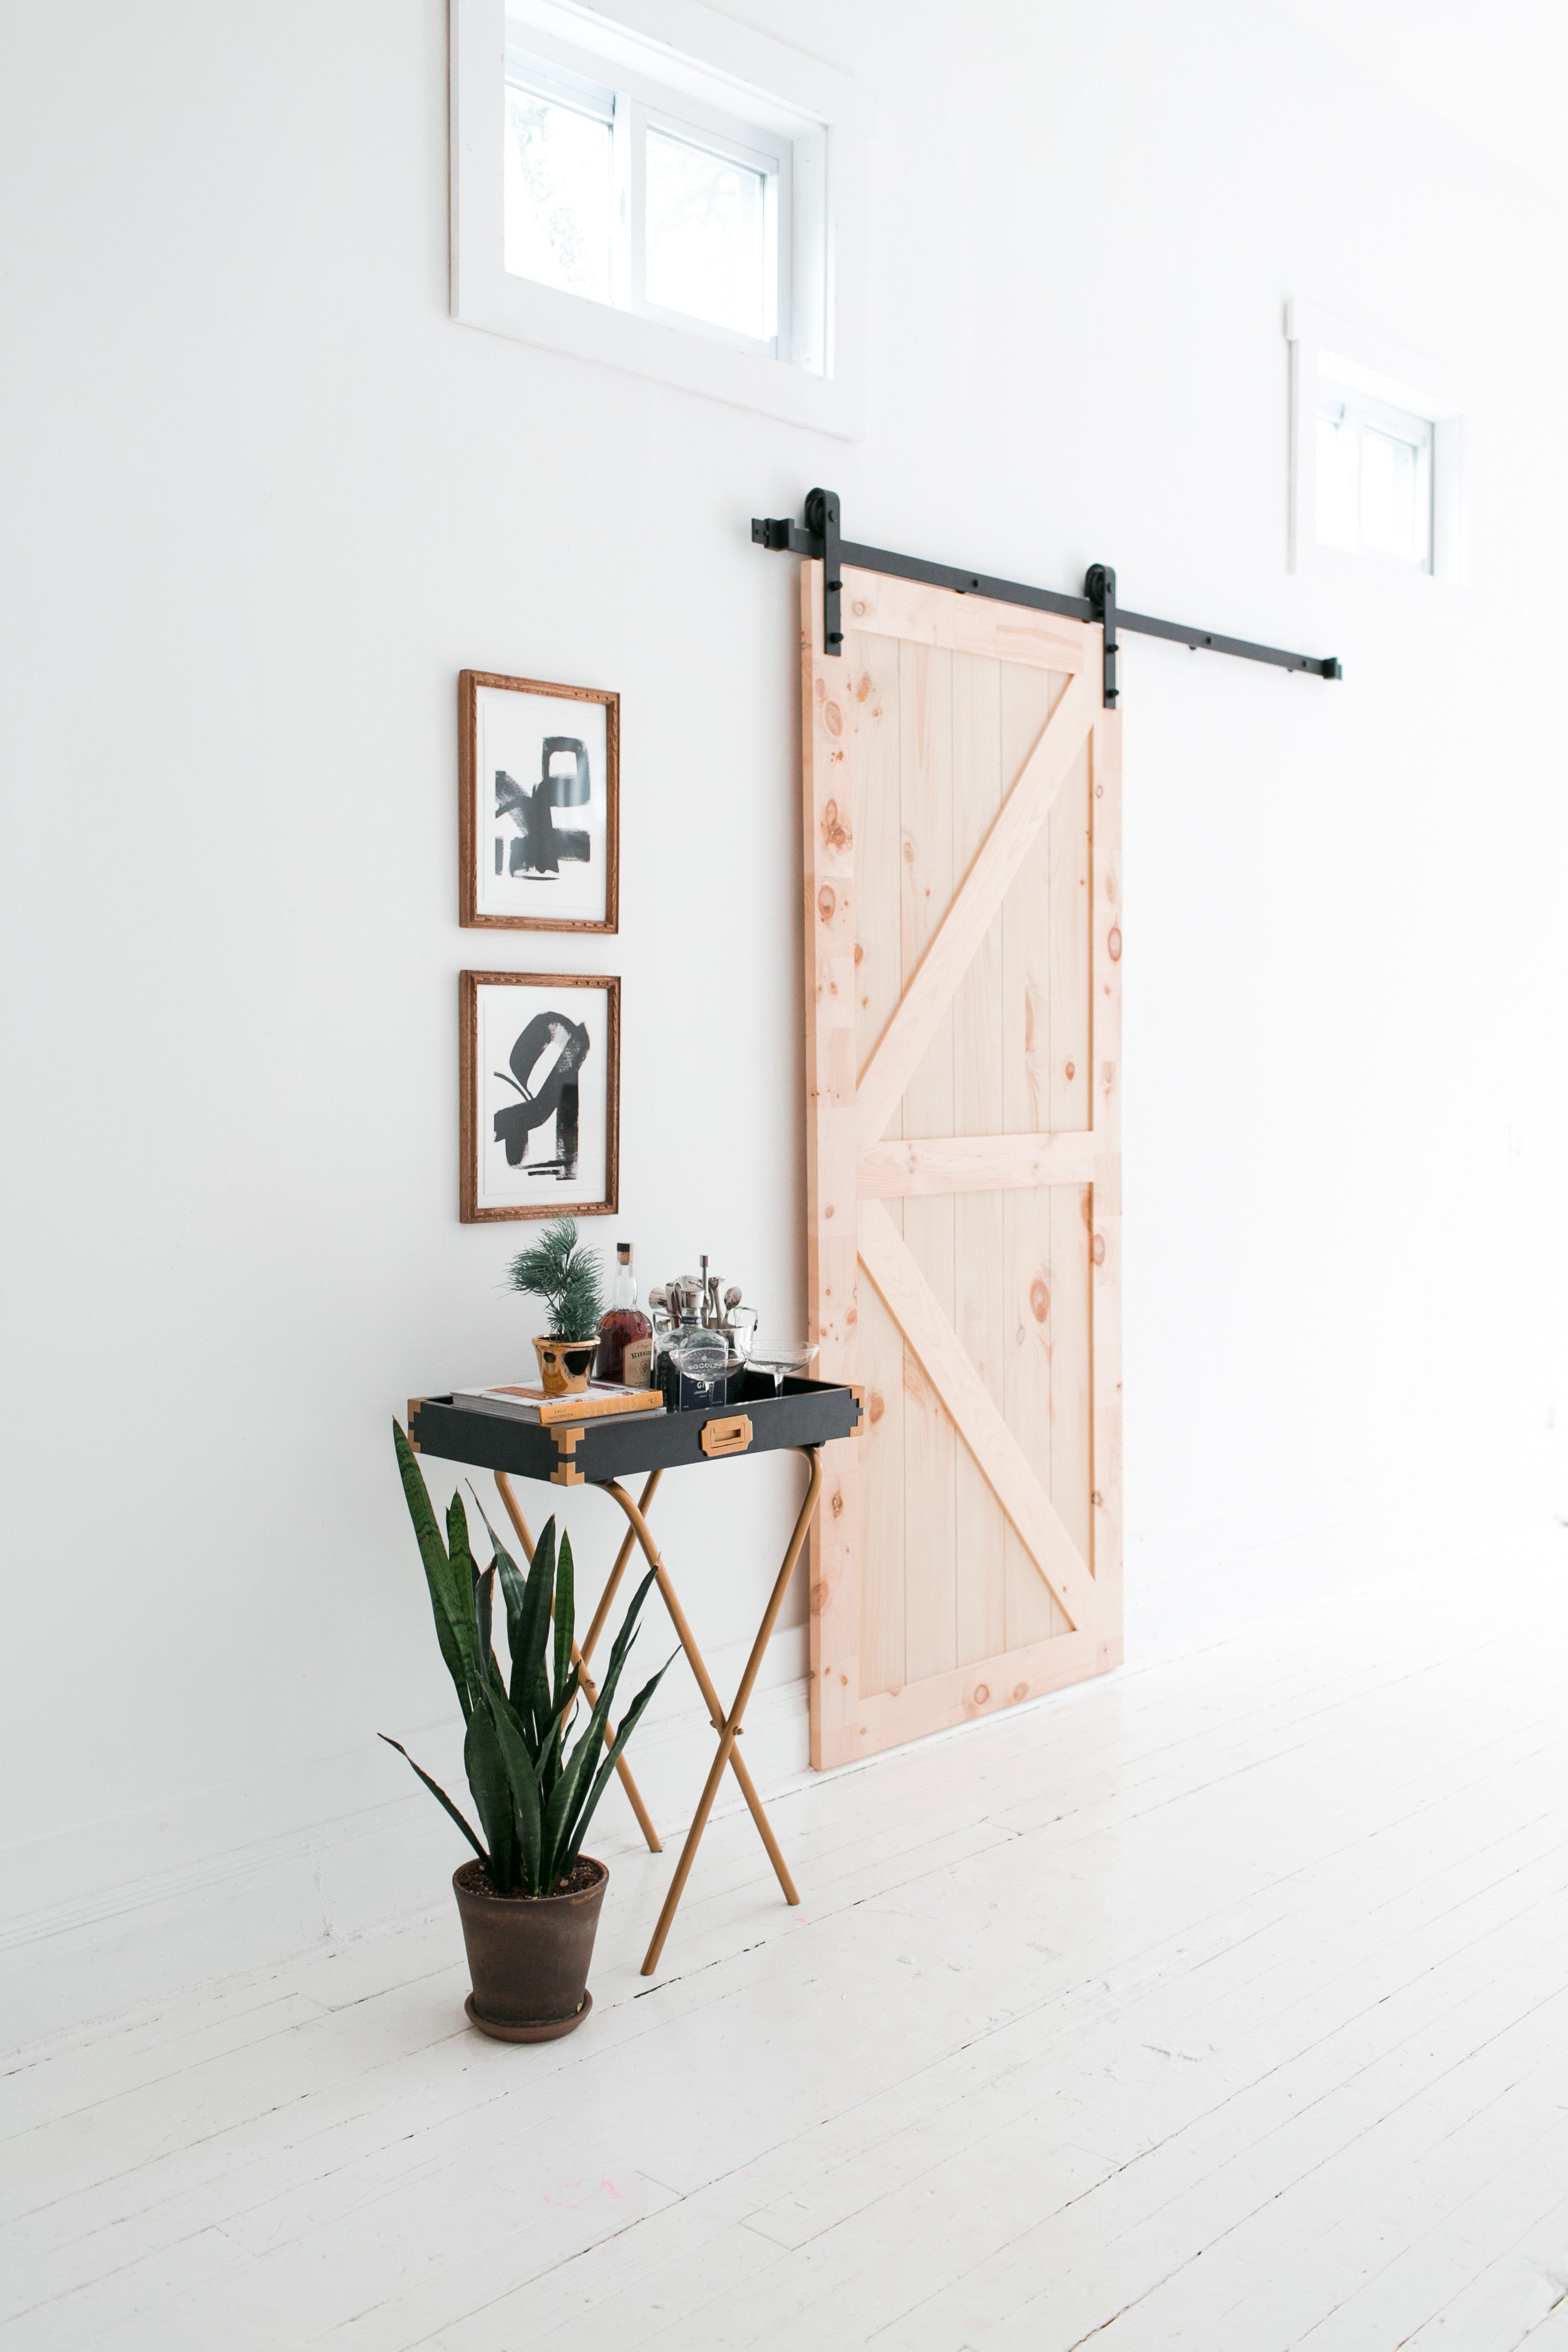 6 Foot 7 Inch Barn Door Hardware Kit. 2 Reviews